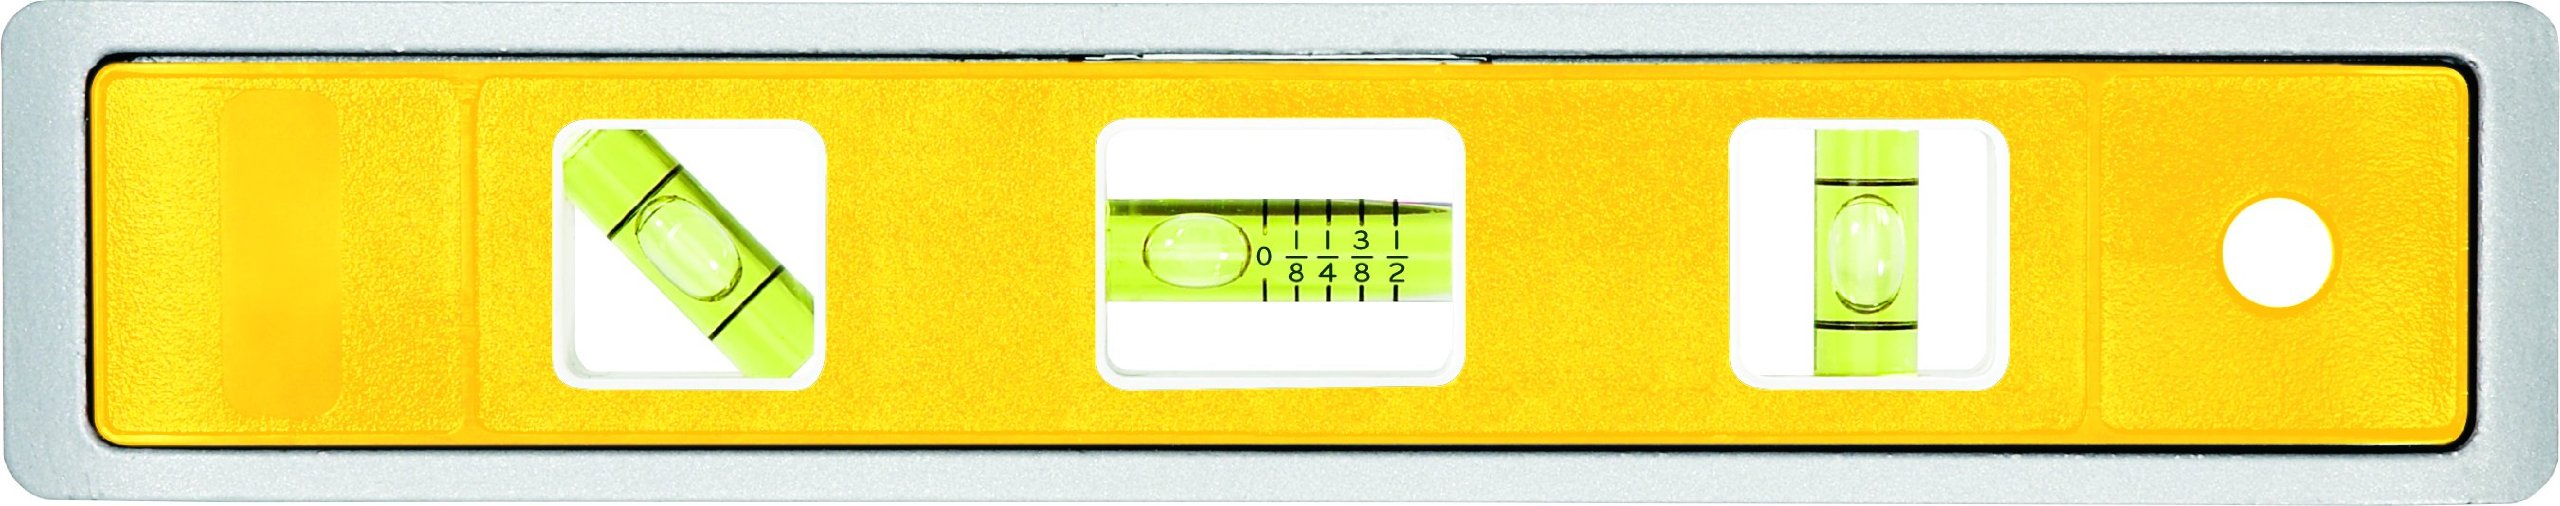 Johnson Level and Tool 1410-0900 9-Inch Multi-Pitch Torpedo Level with Rare Earth Magnets - 3 Vial